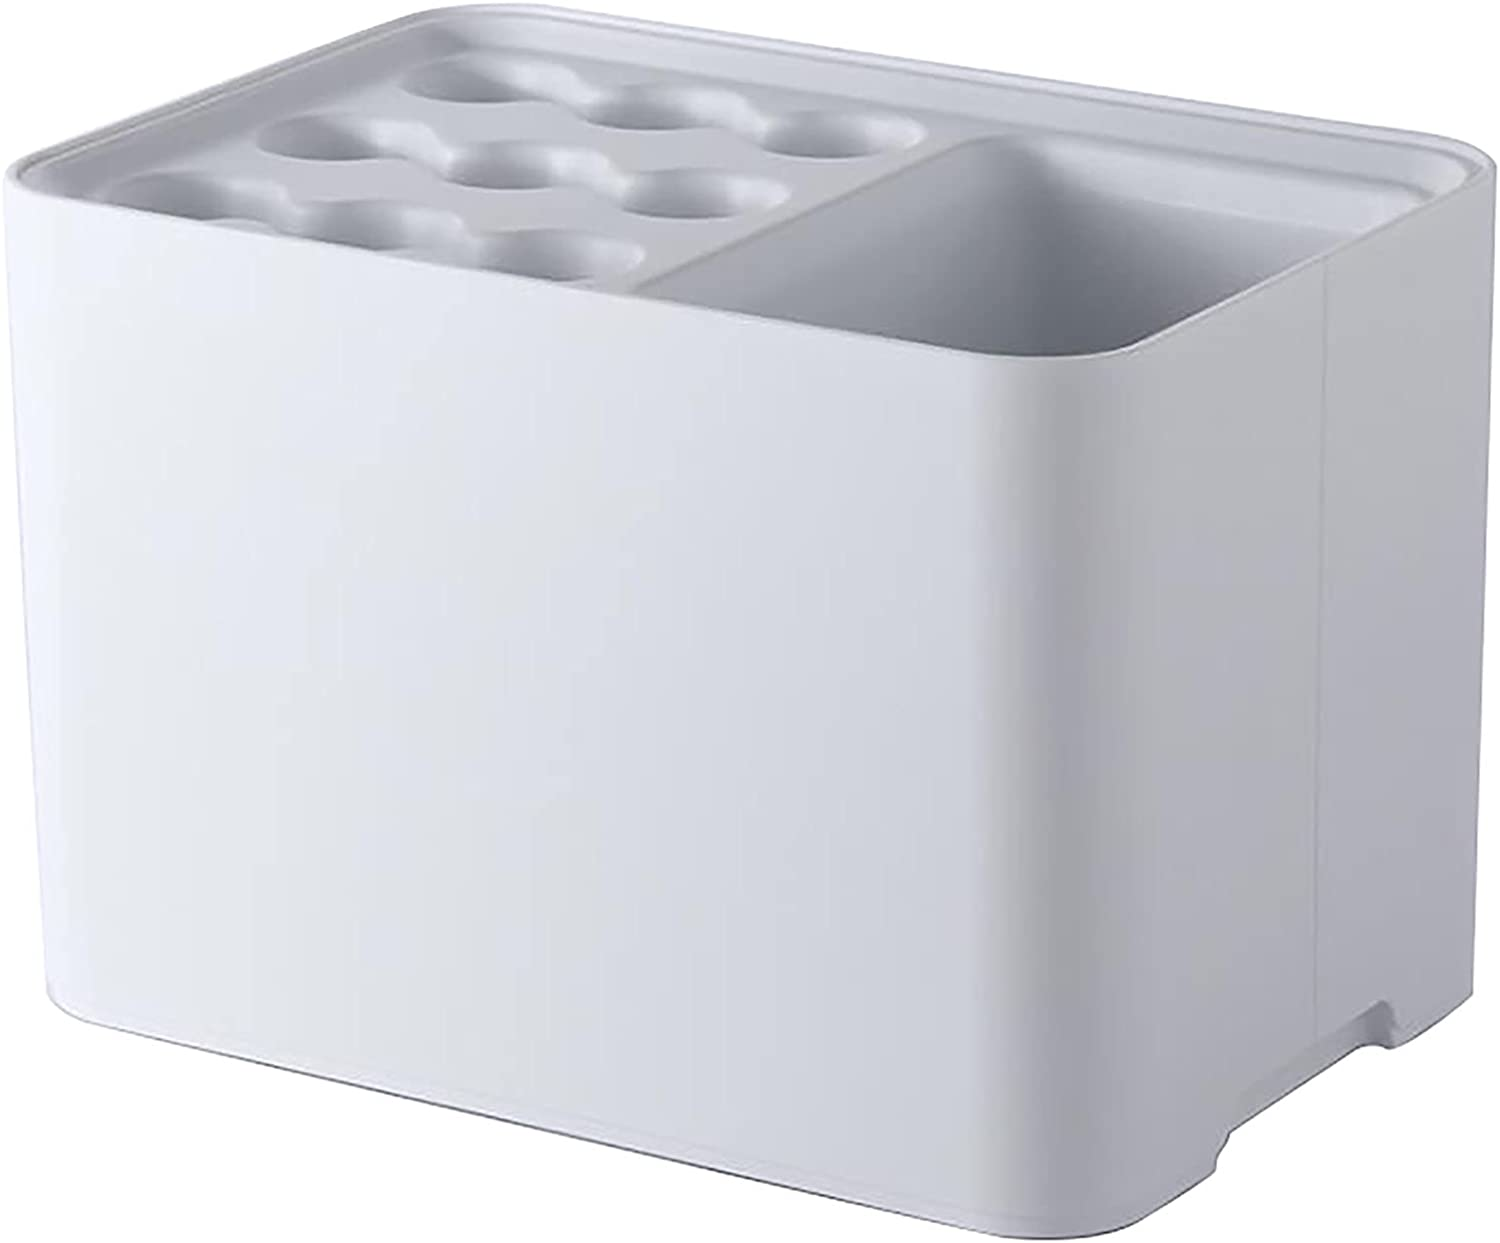 CAPP Umbrella Stand Home Storage Tray Water with Removable Popular standard Rack Superior